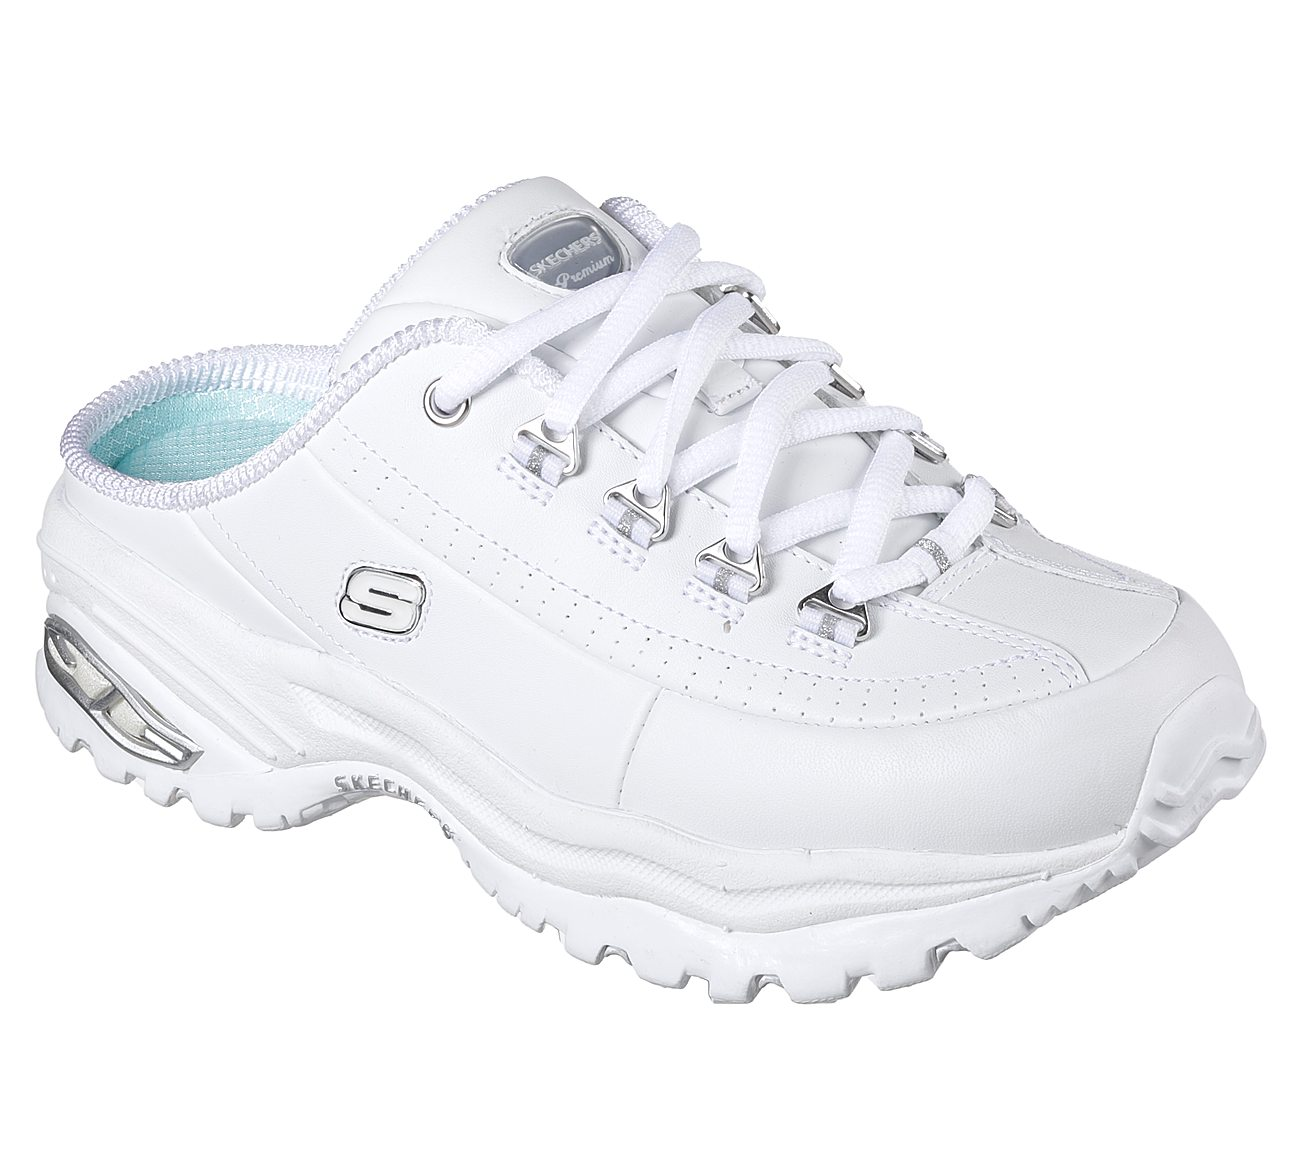 skechers premium sneakers